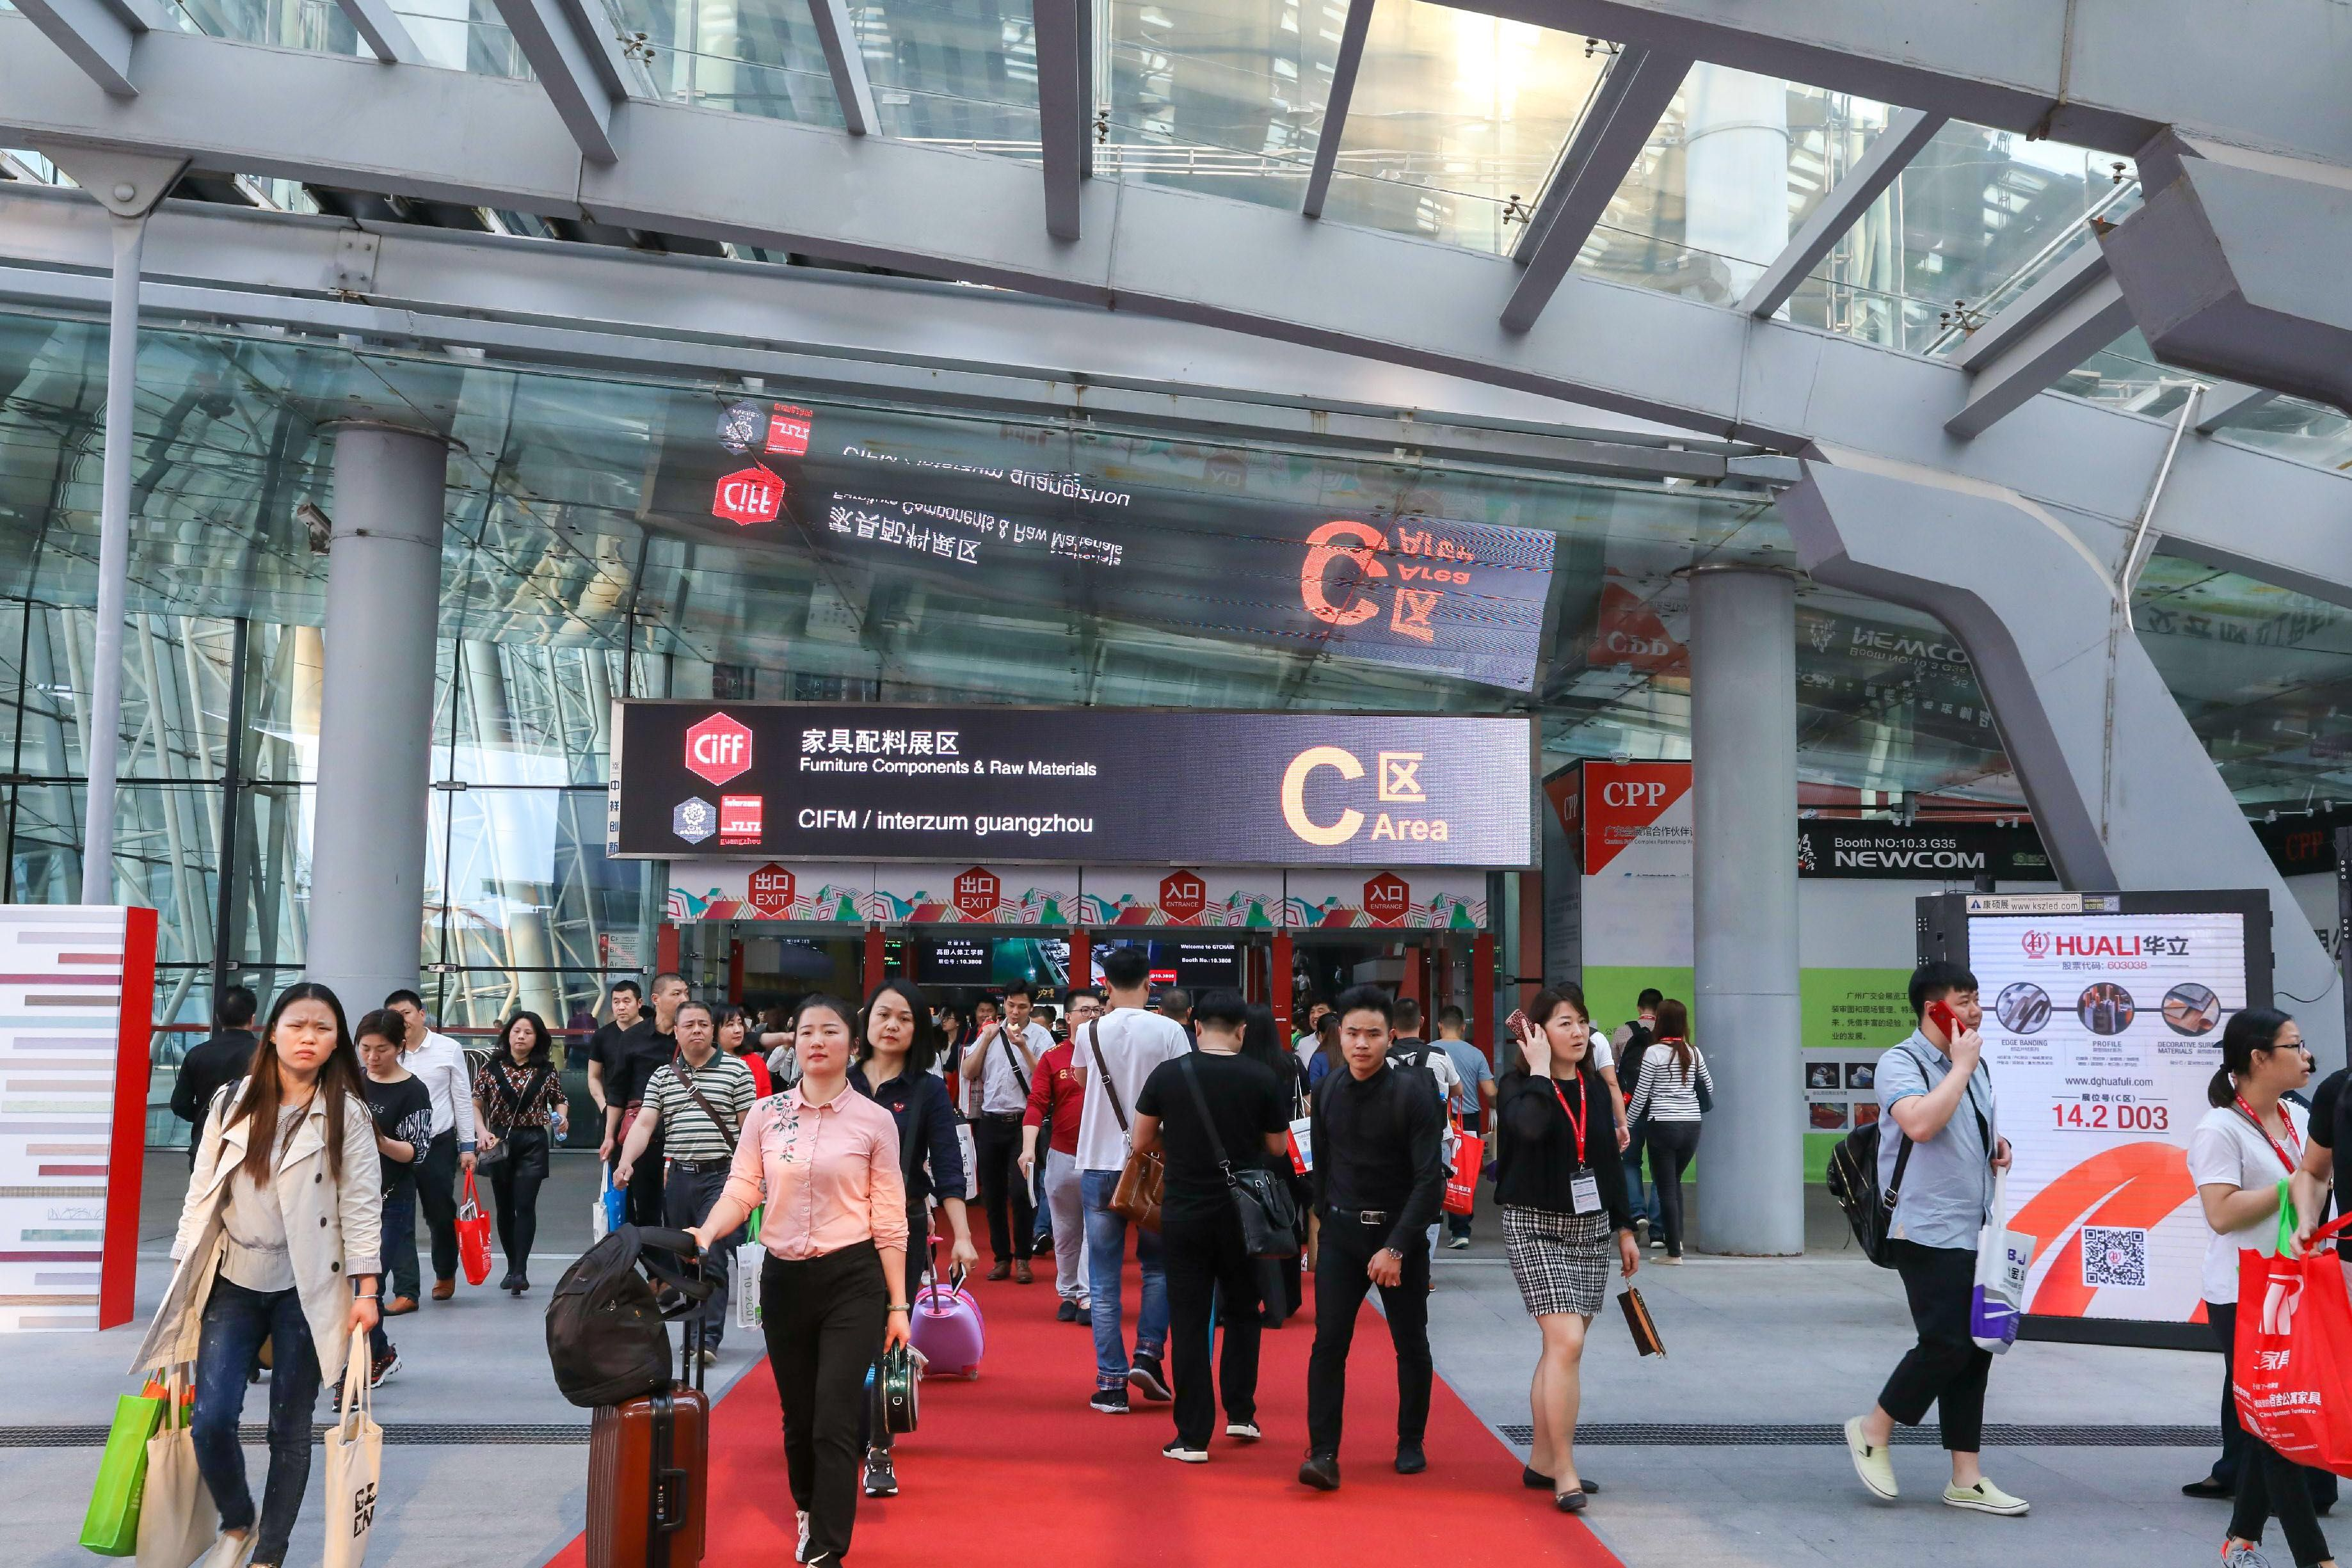 The next CIFM / interzum guangzhou will take place from 28 – 31 March 2020 in Guangzhou, China. (Source: Koelnmesse Co., Ltd.)